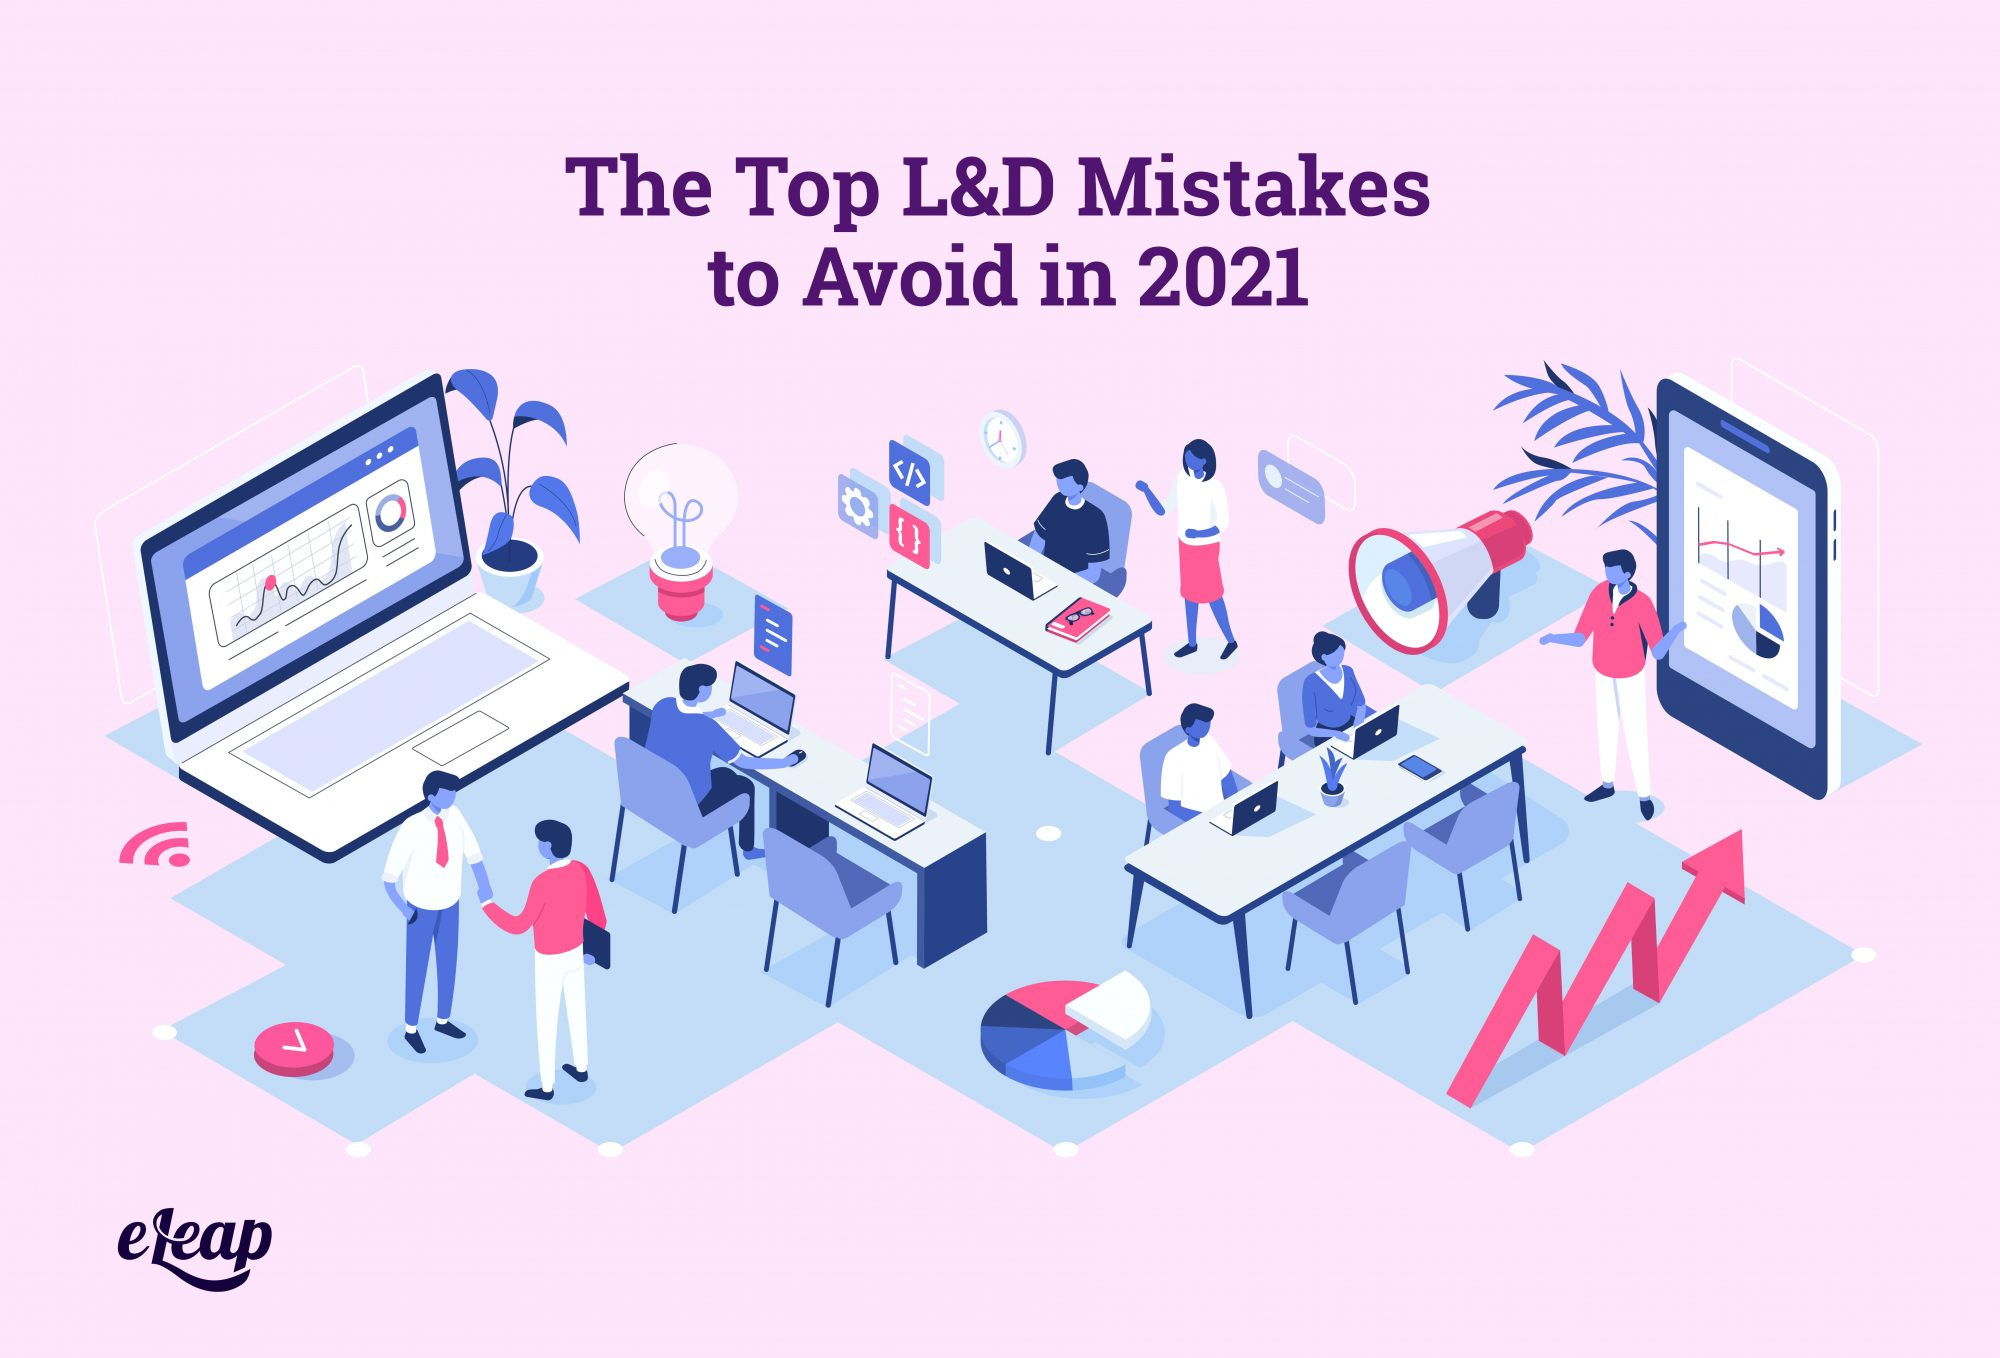 The Top L&D Mistakes to Avoid in 2021